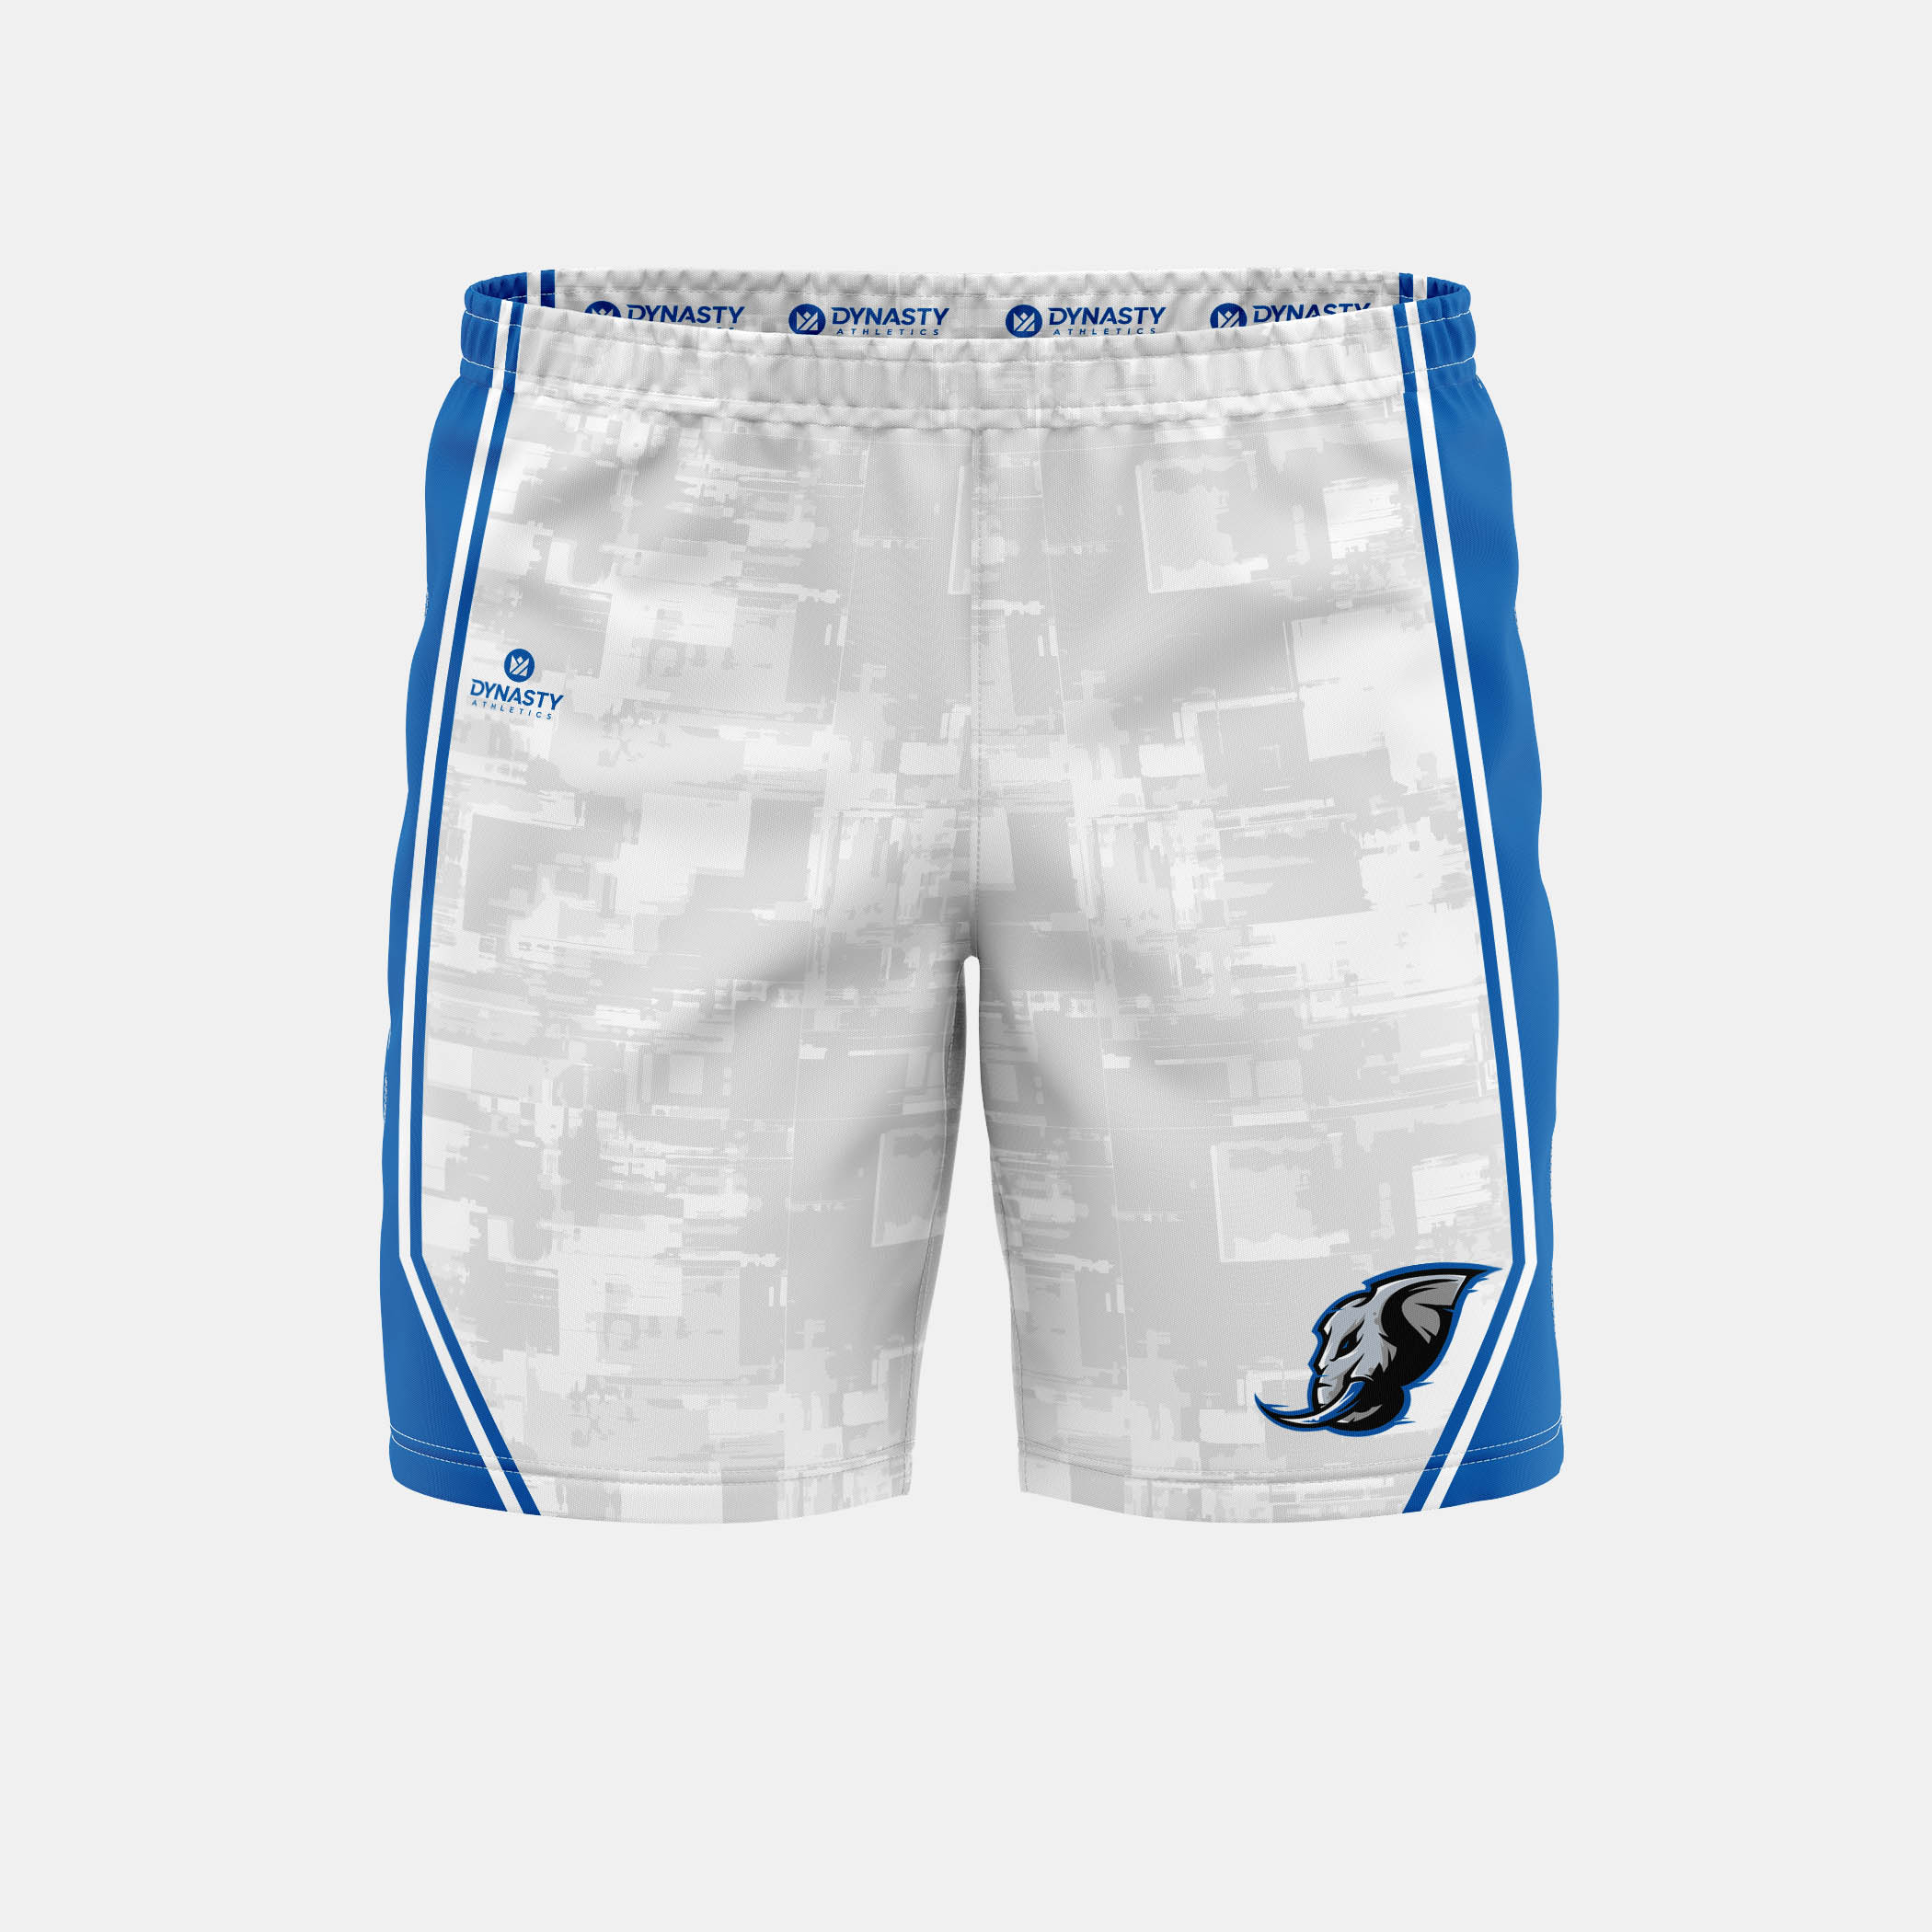 Legend VB Shorts Front View edited